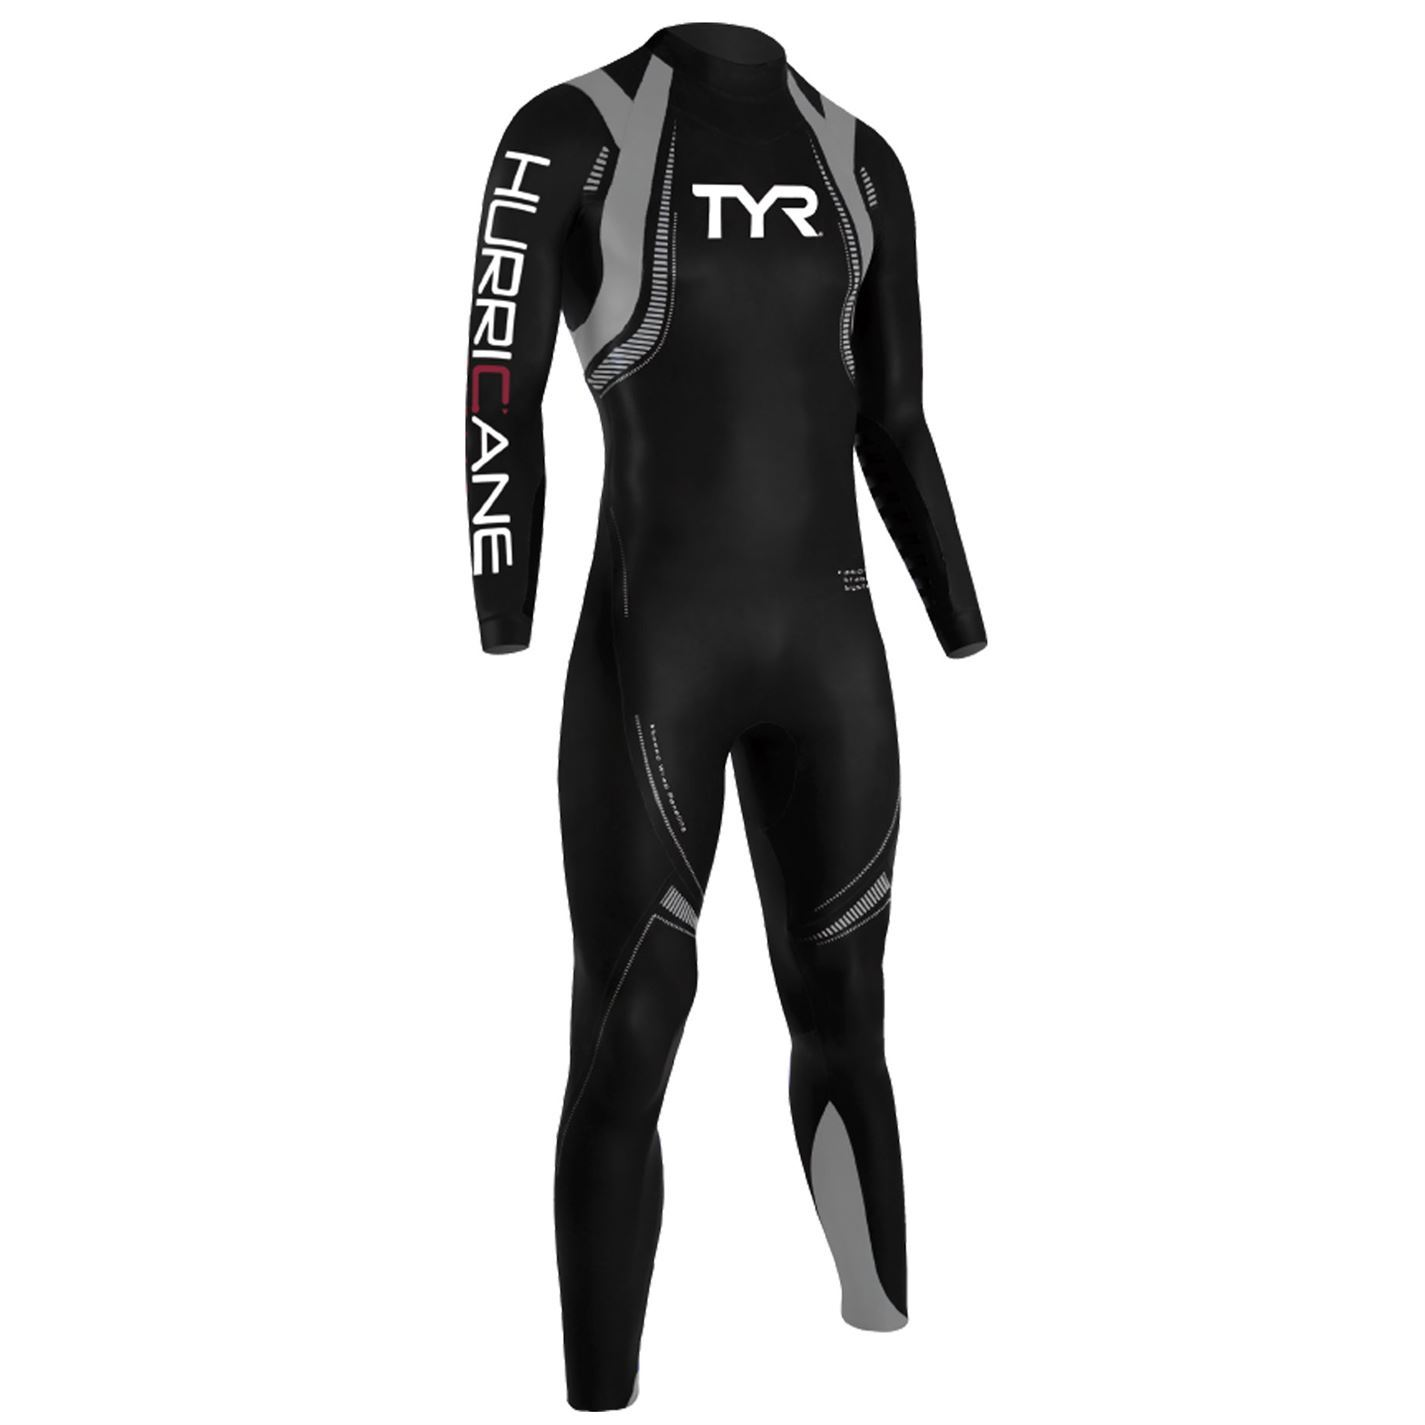 Tyr Womens Hurr C3 Wetsuit Ladies Swimwear Swim Suit Swimming